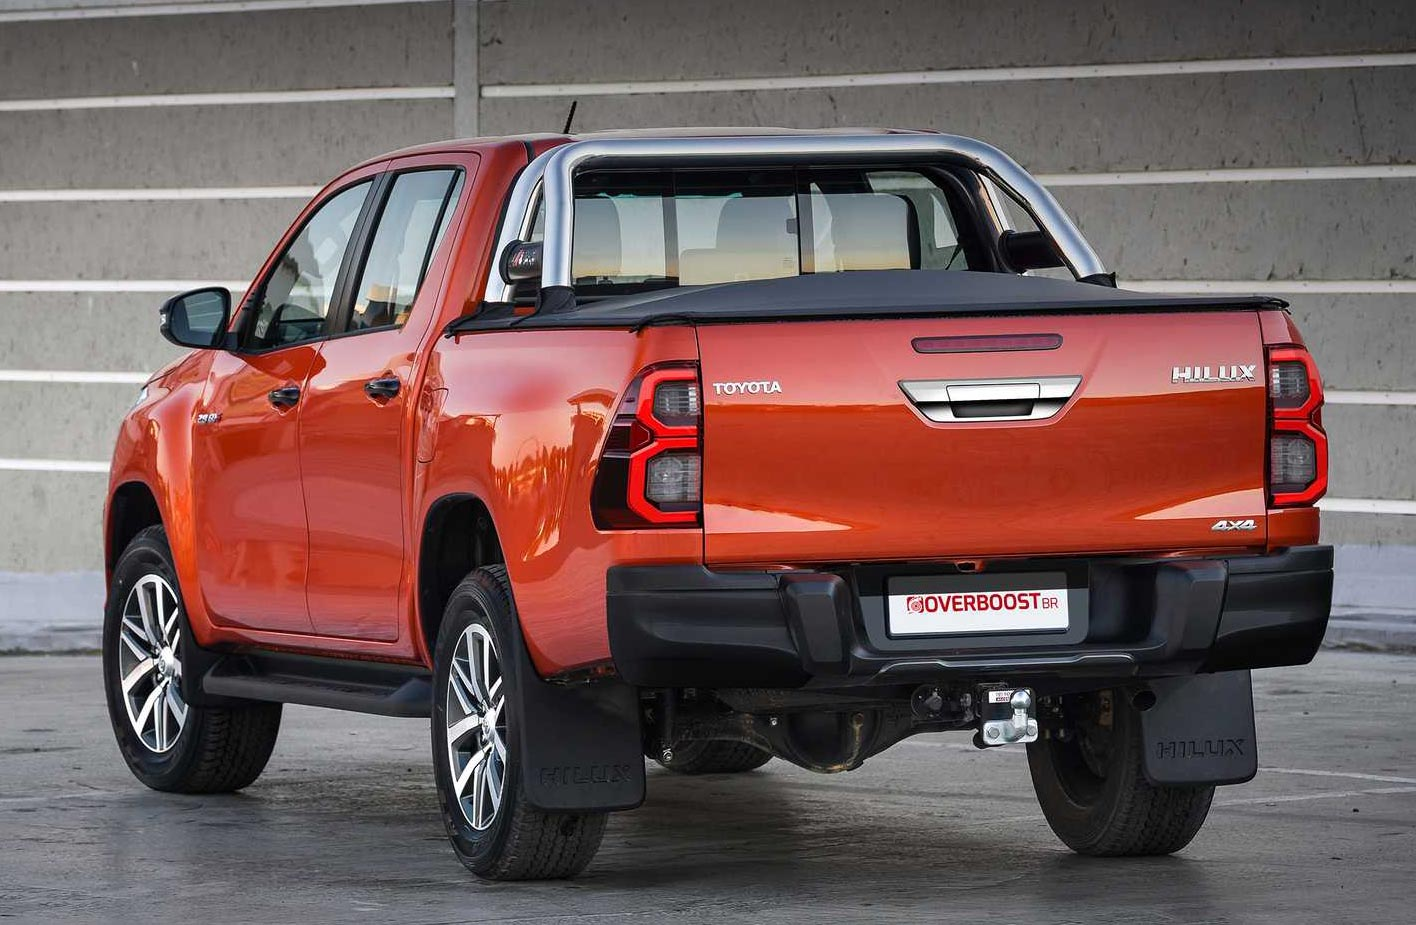 Nueva Toyota Hilux 2021 (restyling)